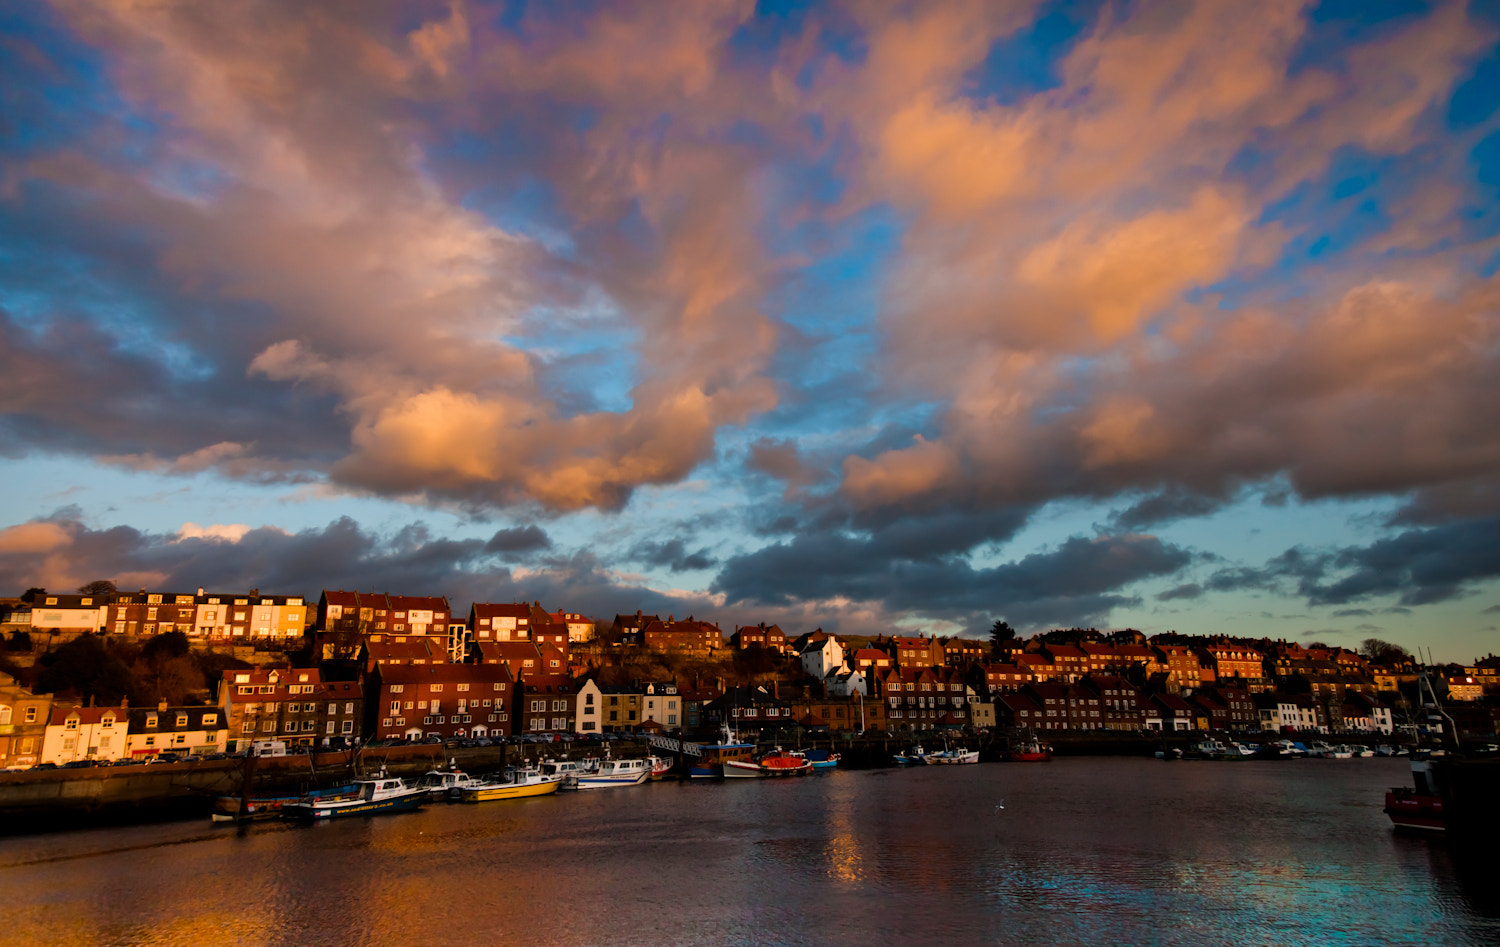 Photograph Whitby by Guille Ibanez on 500px